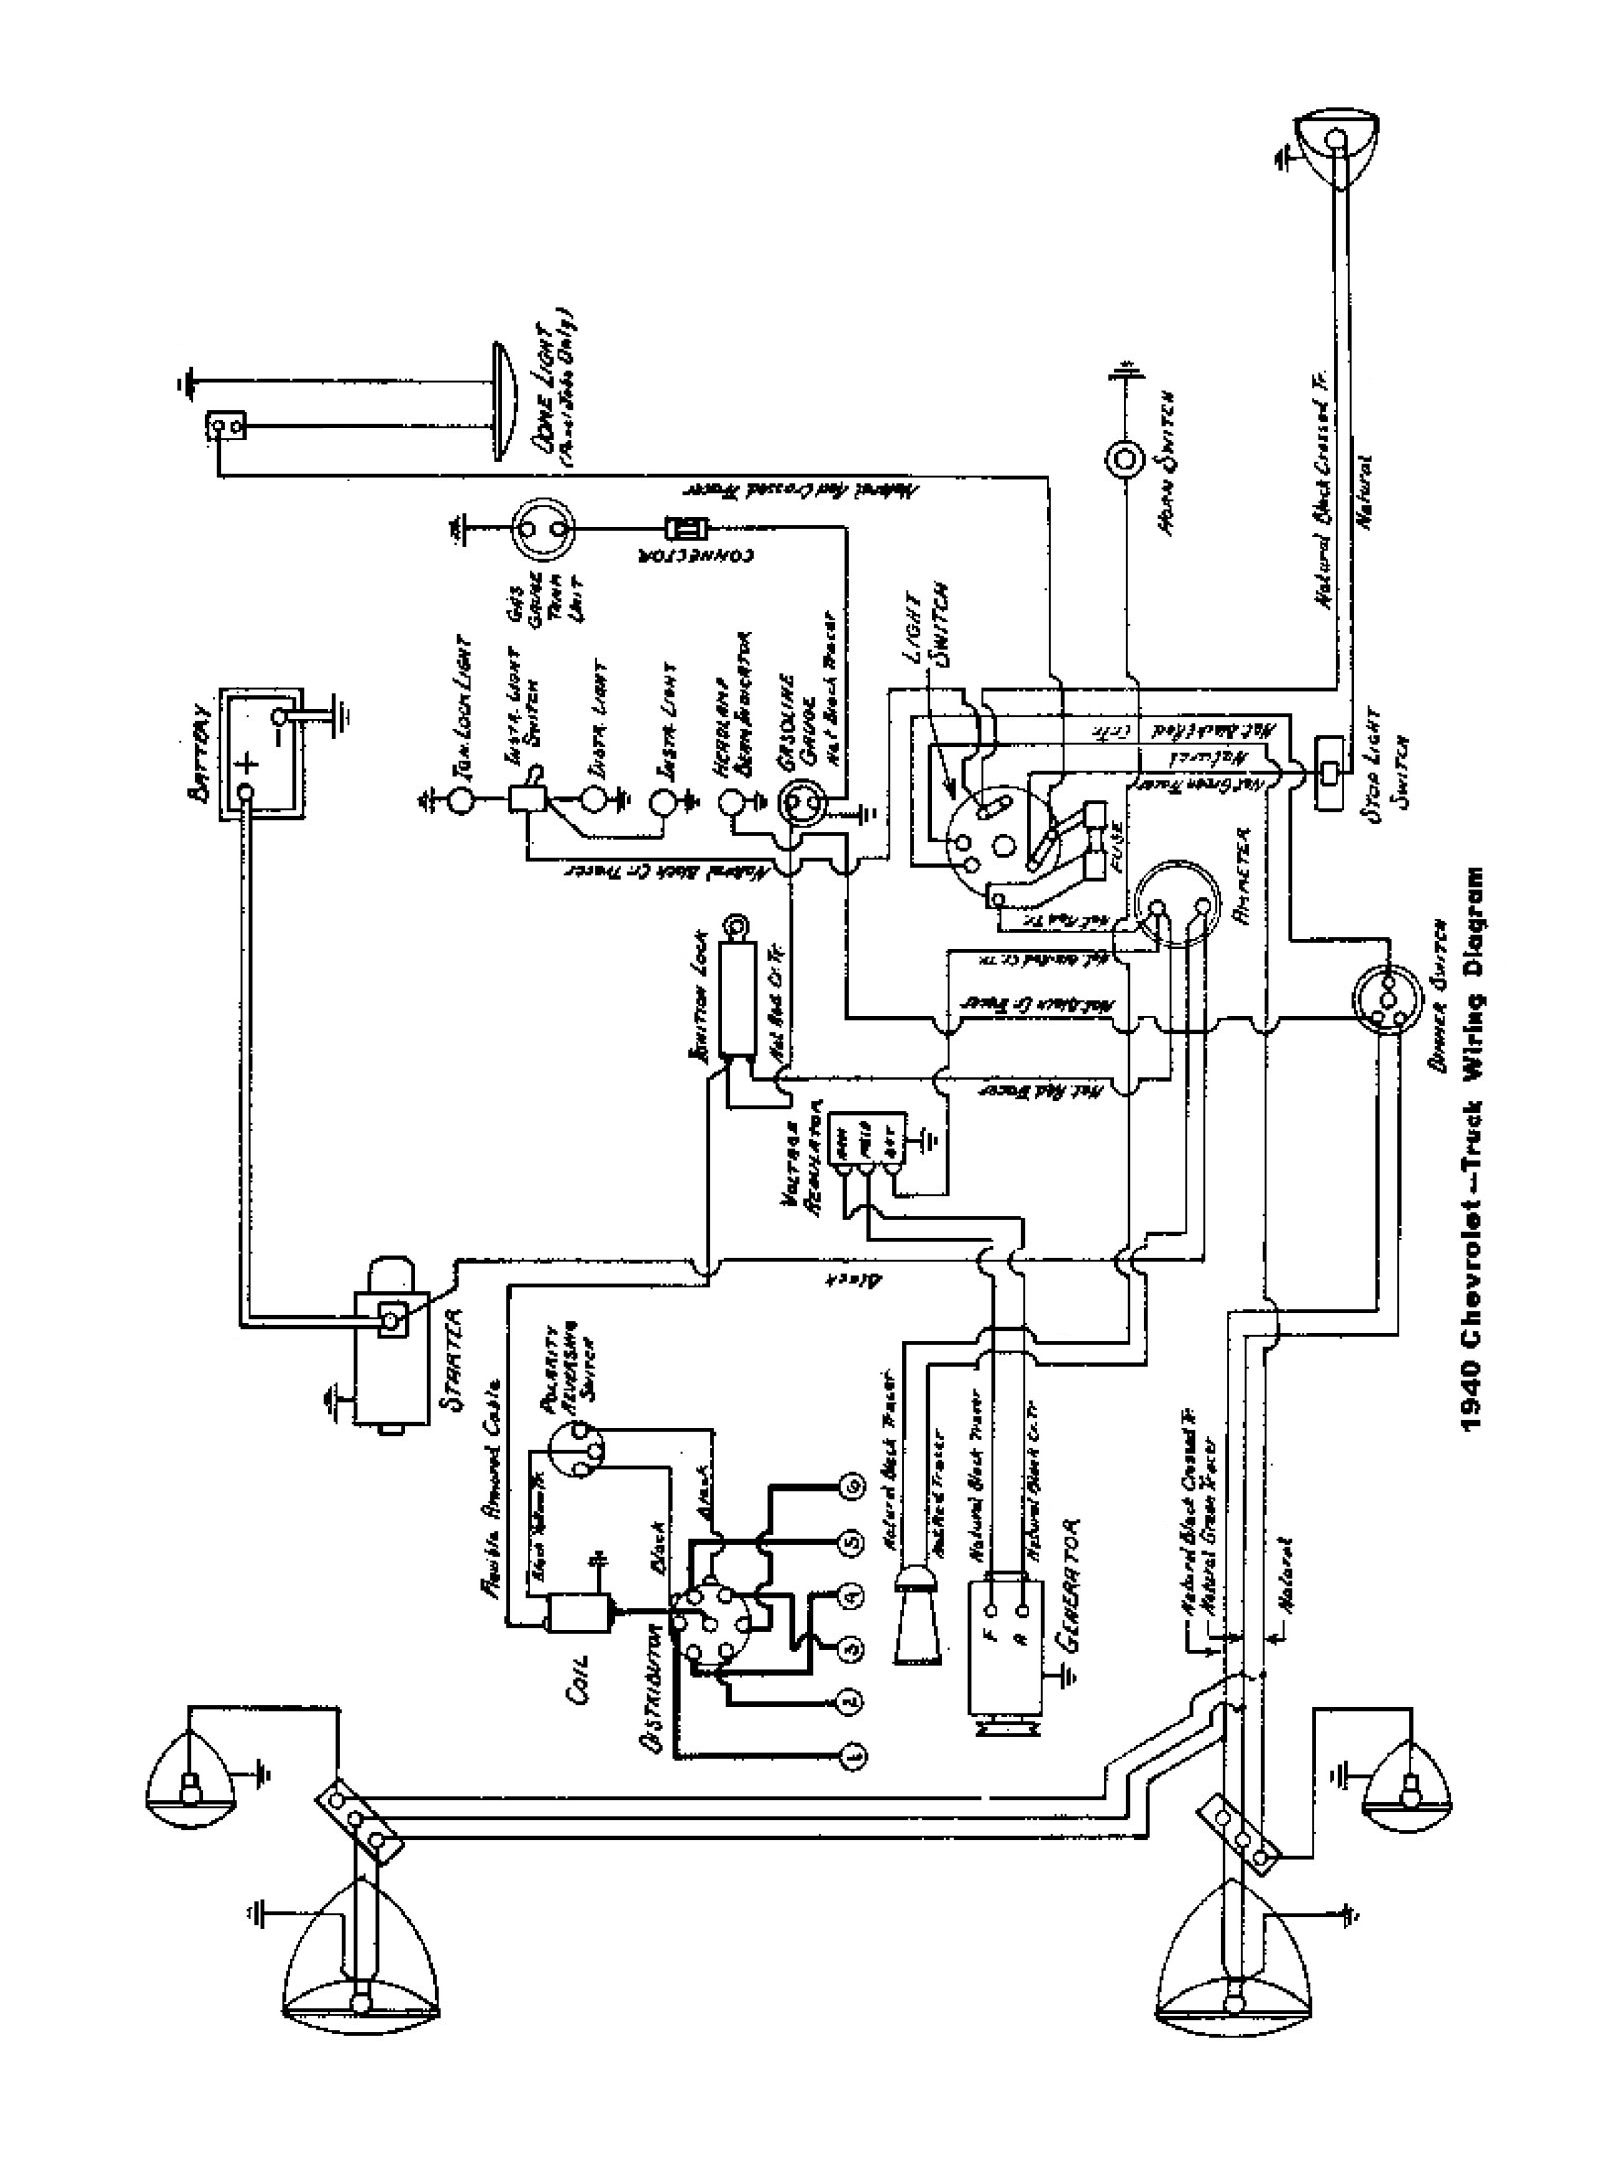 truck wiring diagram wiring diagrams schematrucks wiring diagram wiring diagram todays kenworth truck wiring diagram chevy wiring diagrams freightliner truck wiring